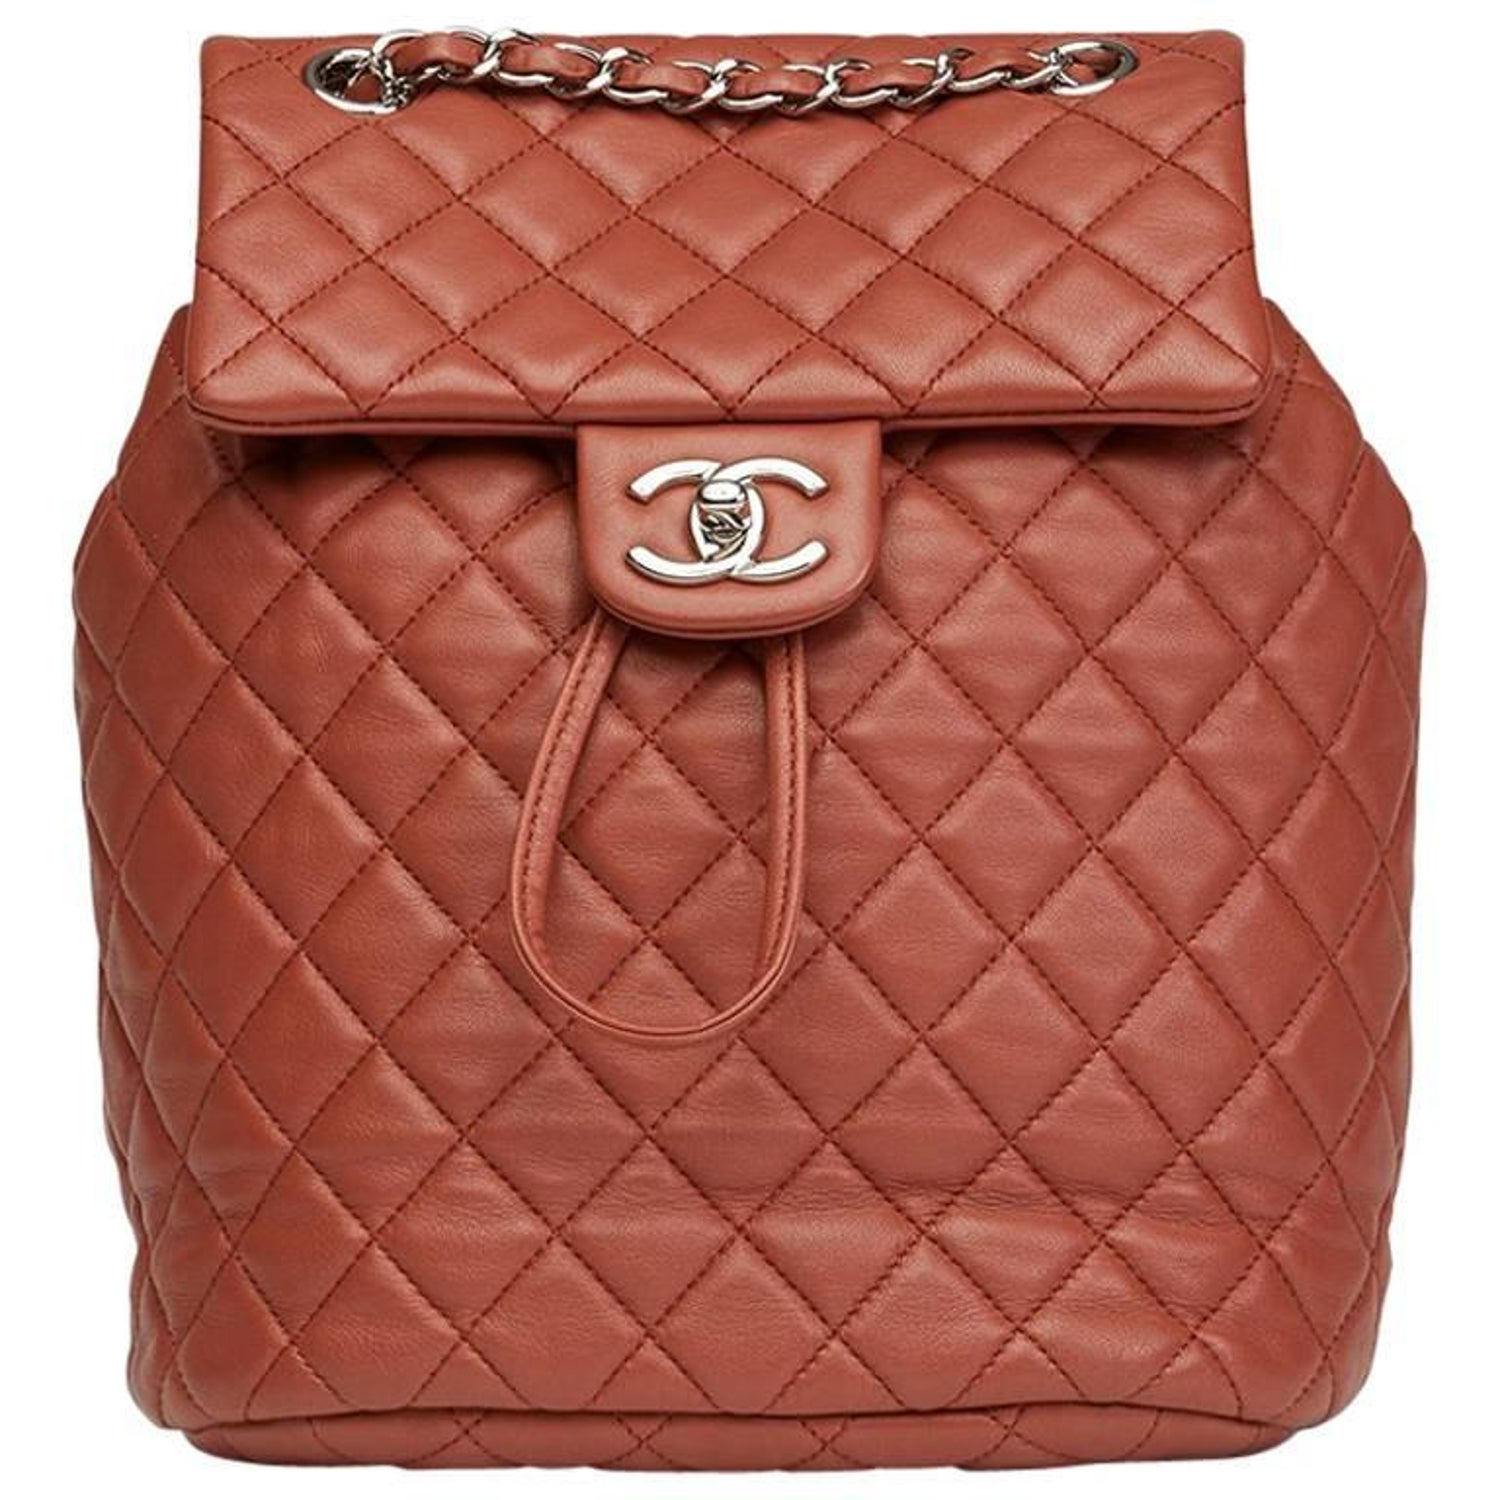 fc6dd55e25a6 2016 Chanel Brick Brown Quilted Lambskin Small Urban Spirit Backpack at  1stdibs